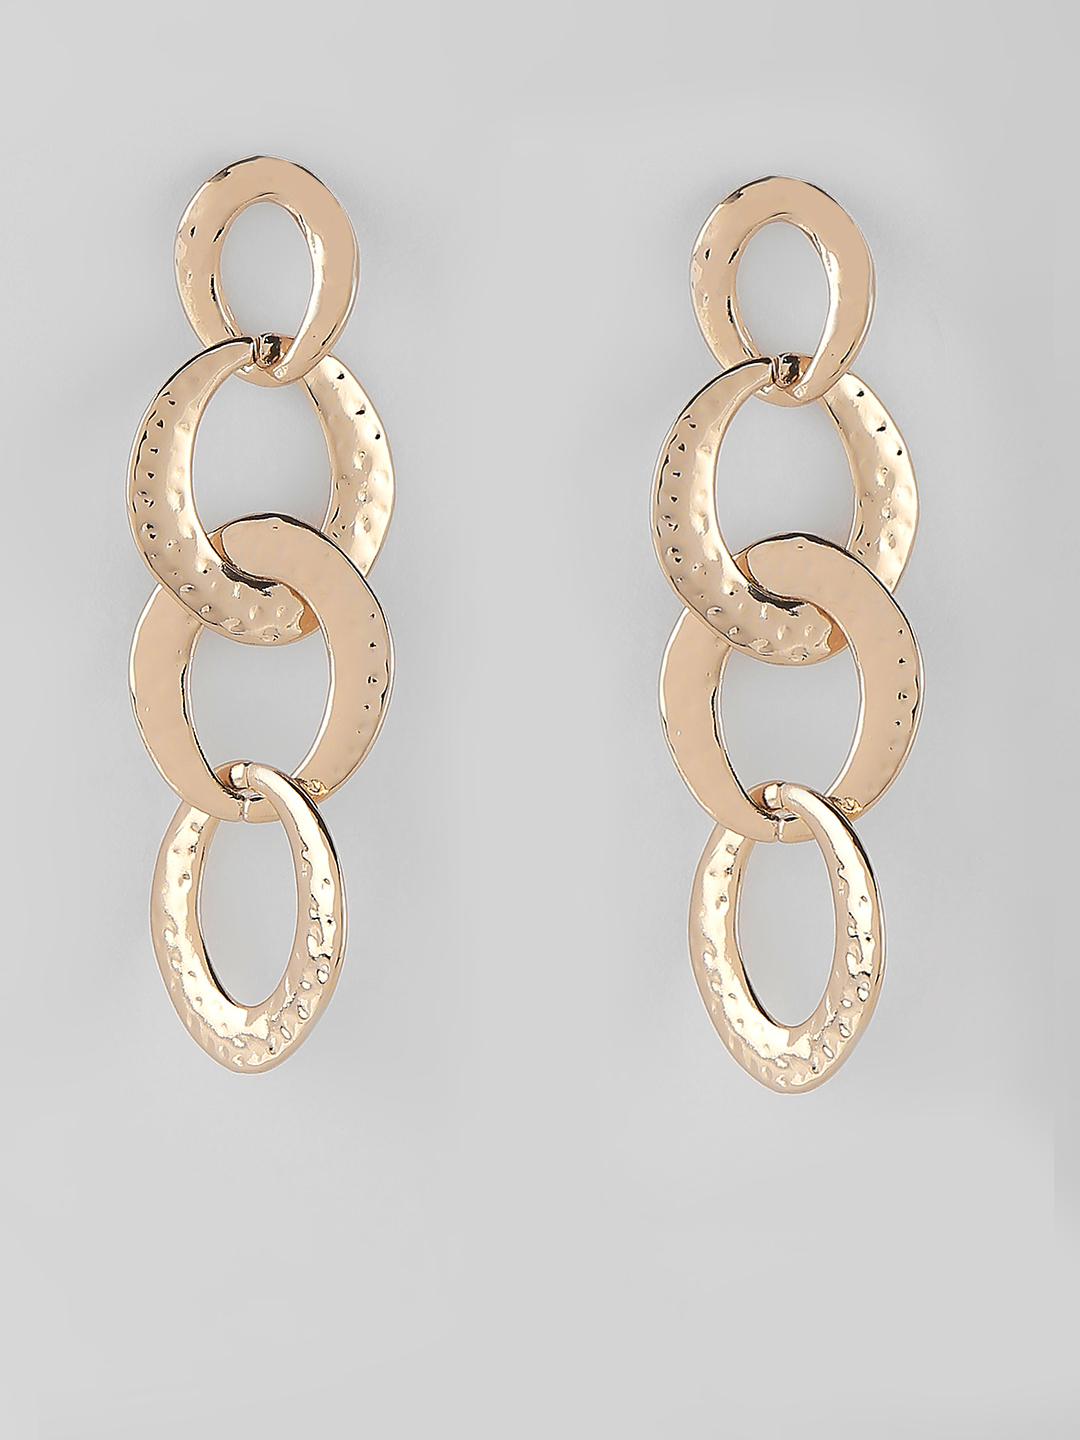 Earrings-Chained To You Earrings1